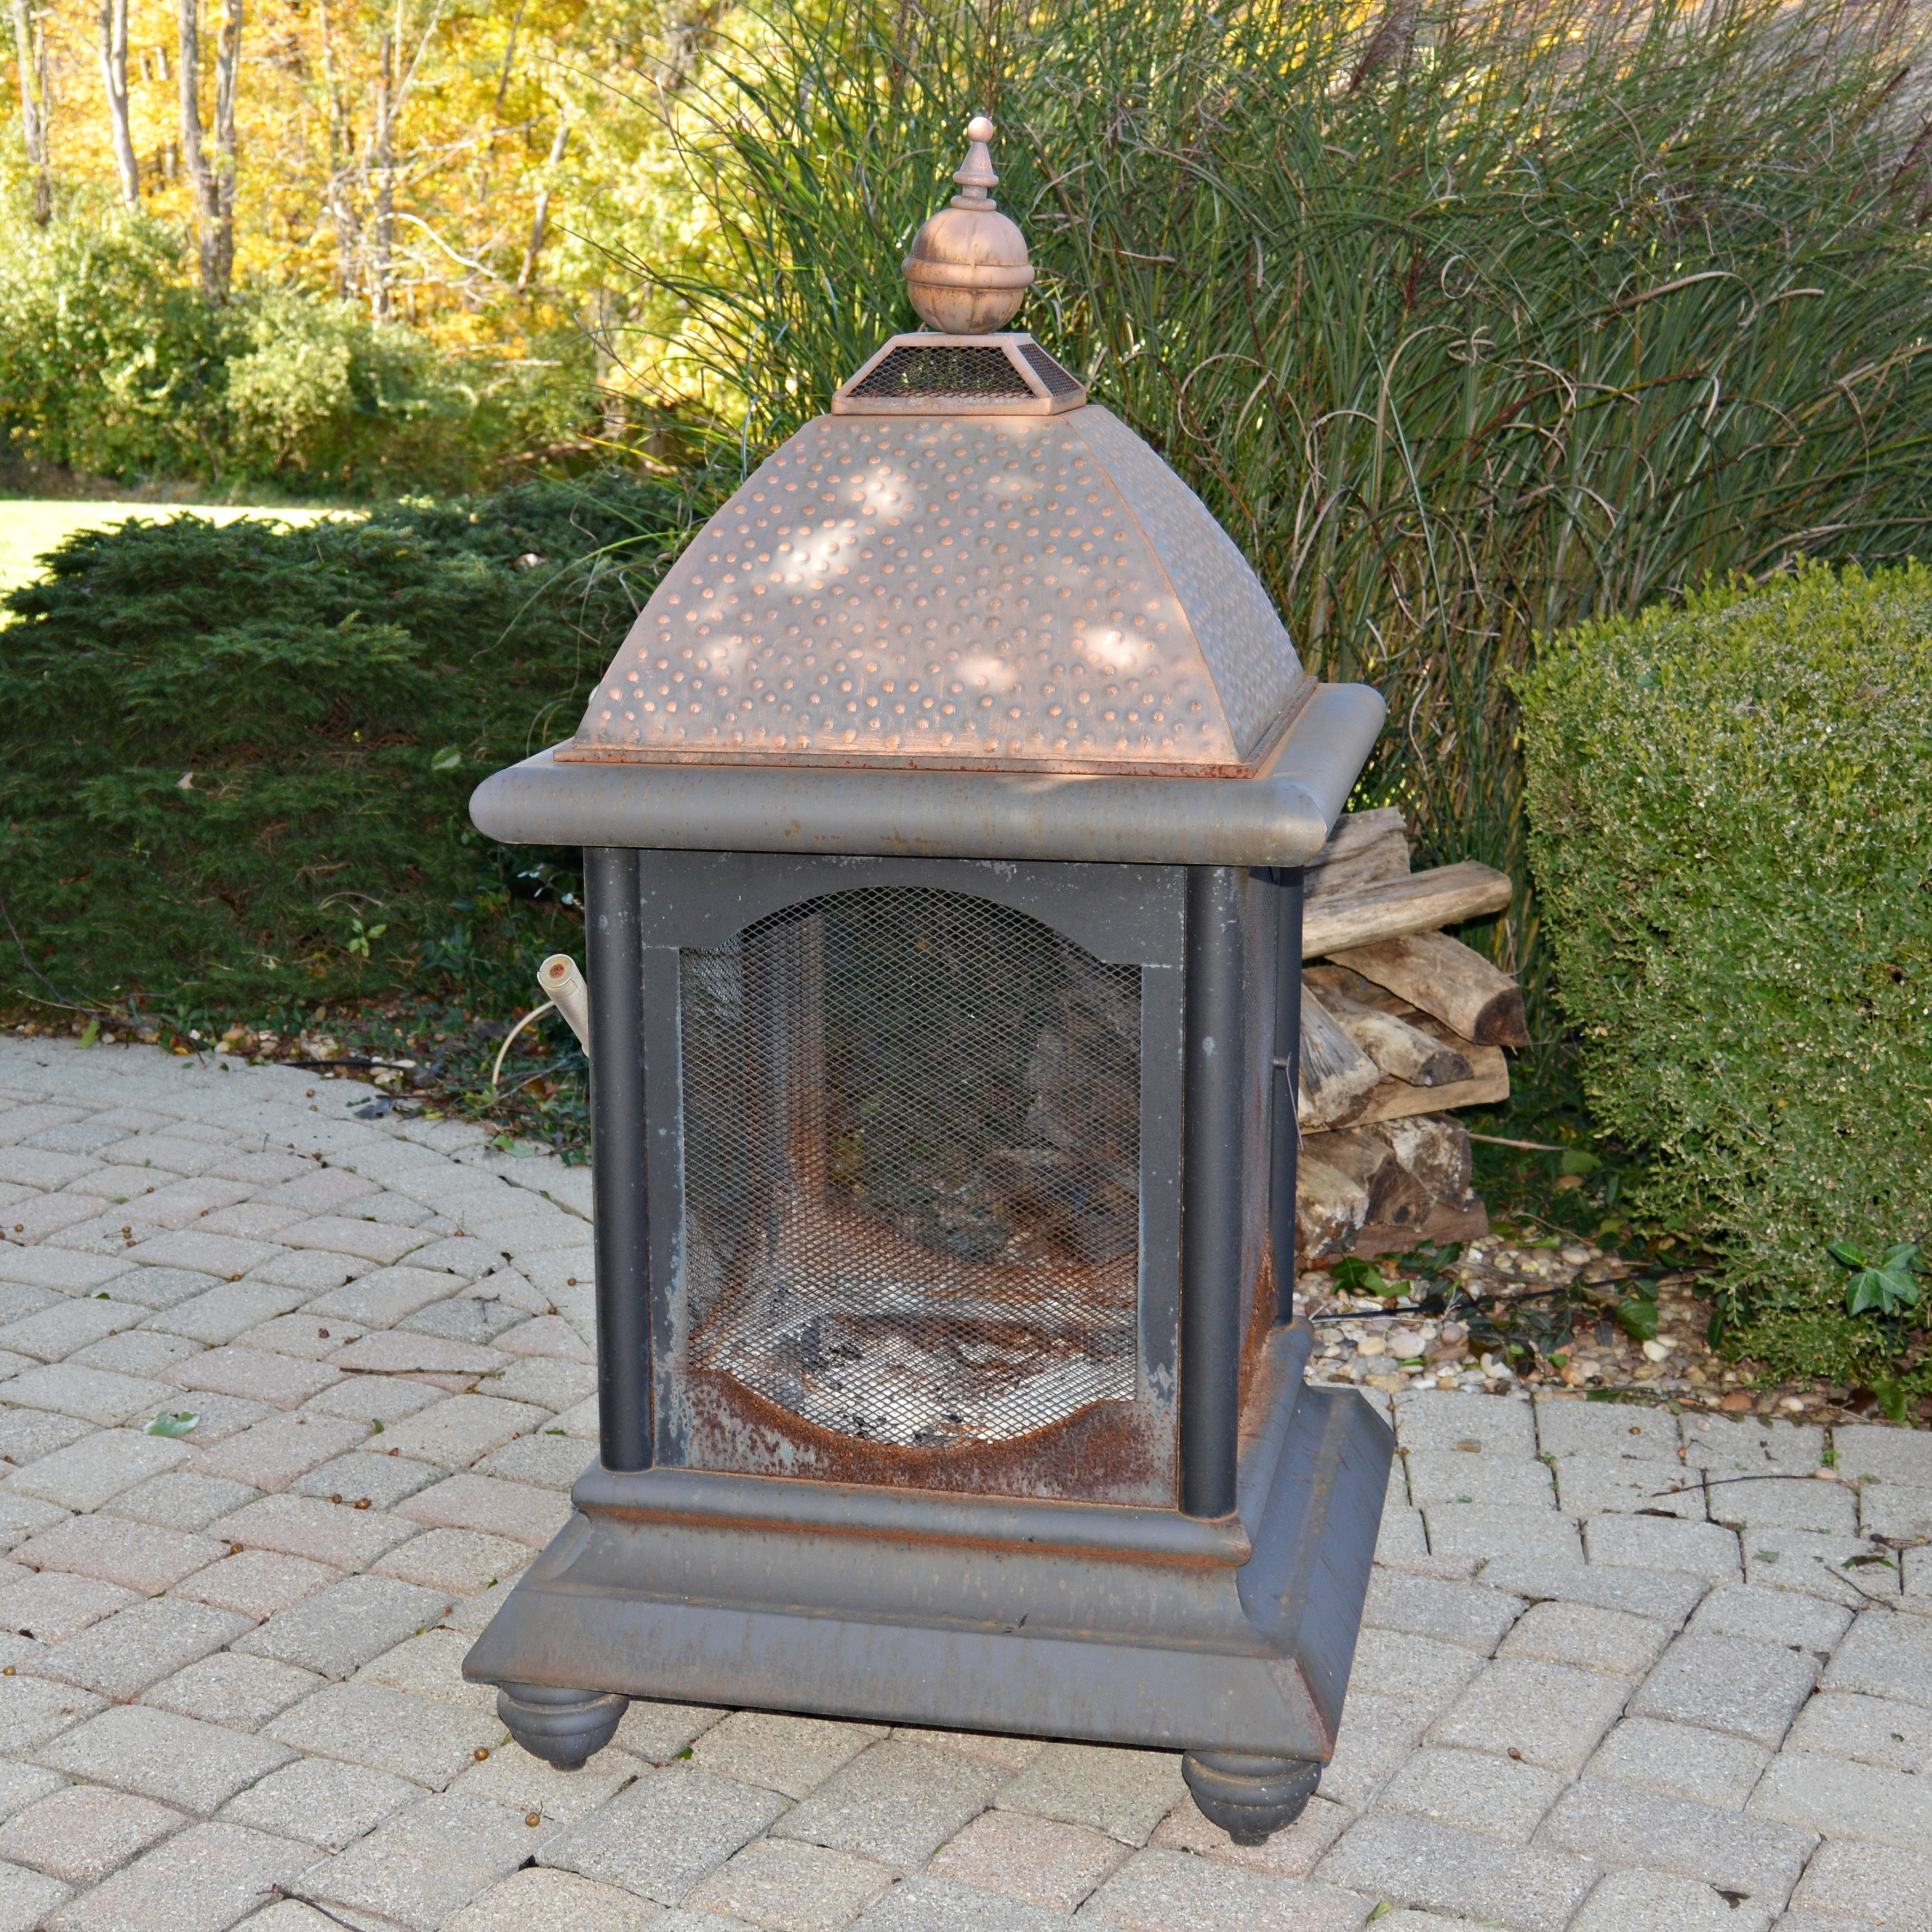 Lantern-Shaped Outdoor Fire Pit